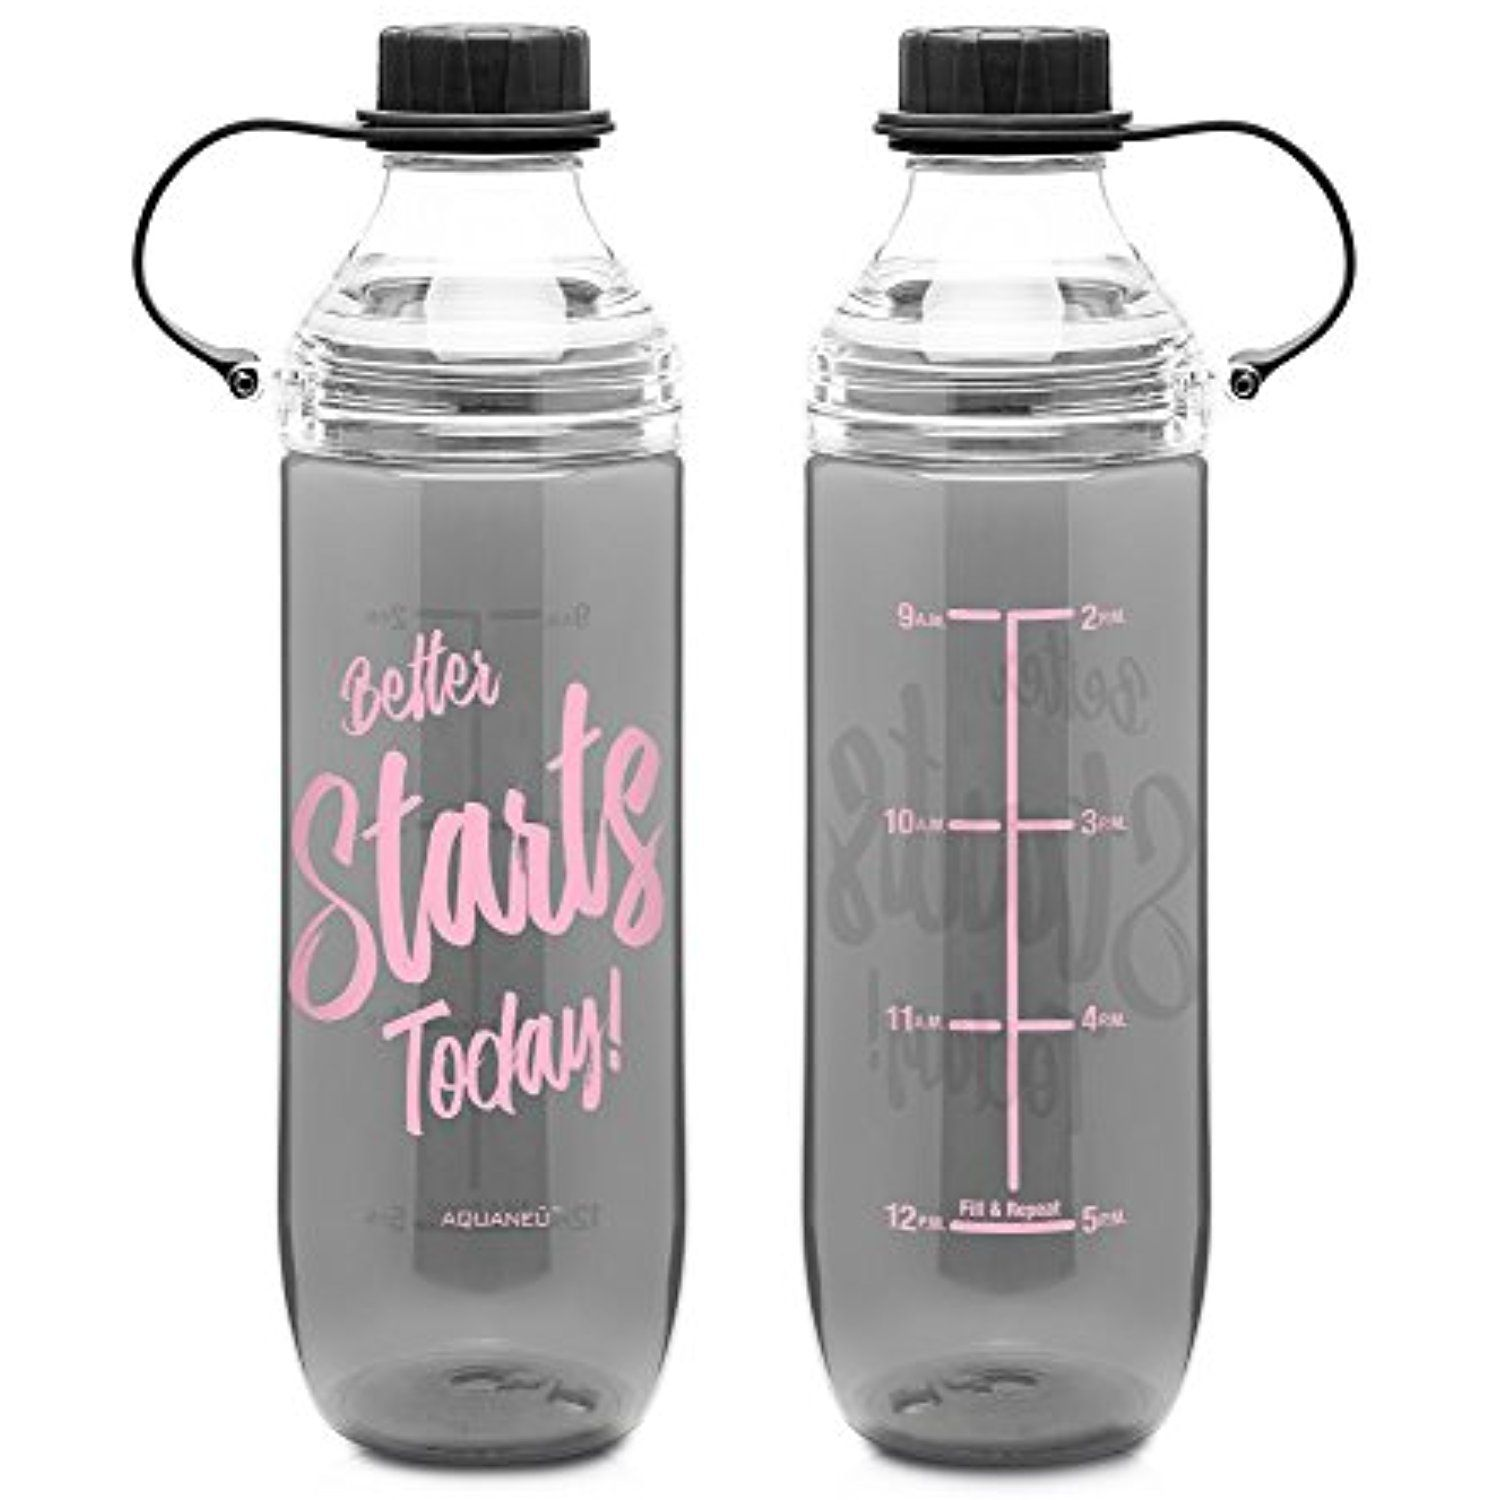 7590e5c434 28 oz Inspirational Fruit Infuser Water Bottle with Measurements | Goal  Marked Times For Measuring Your